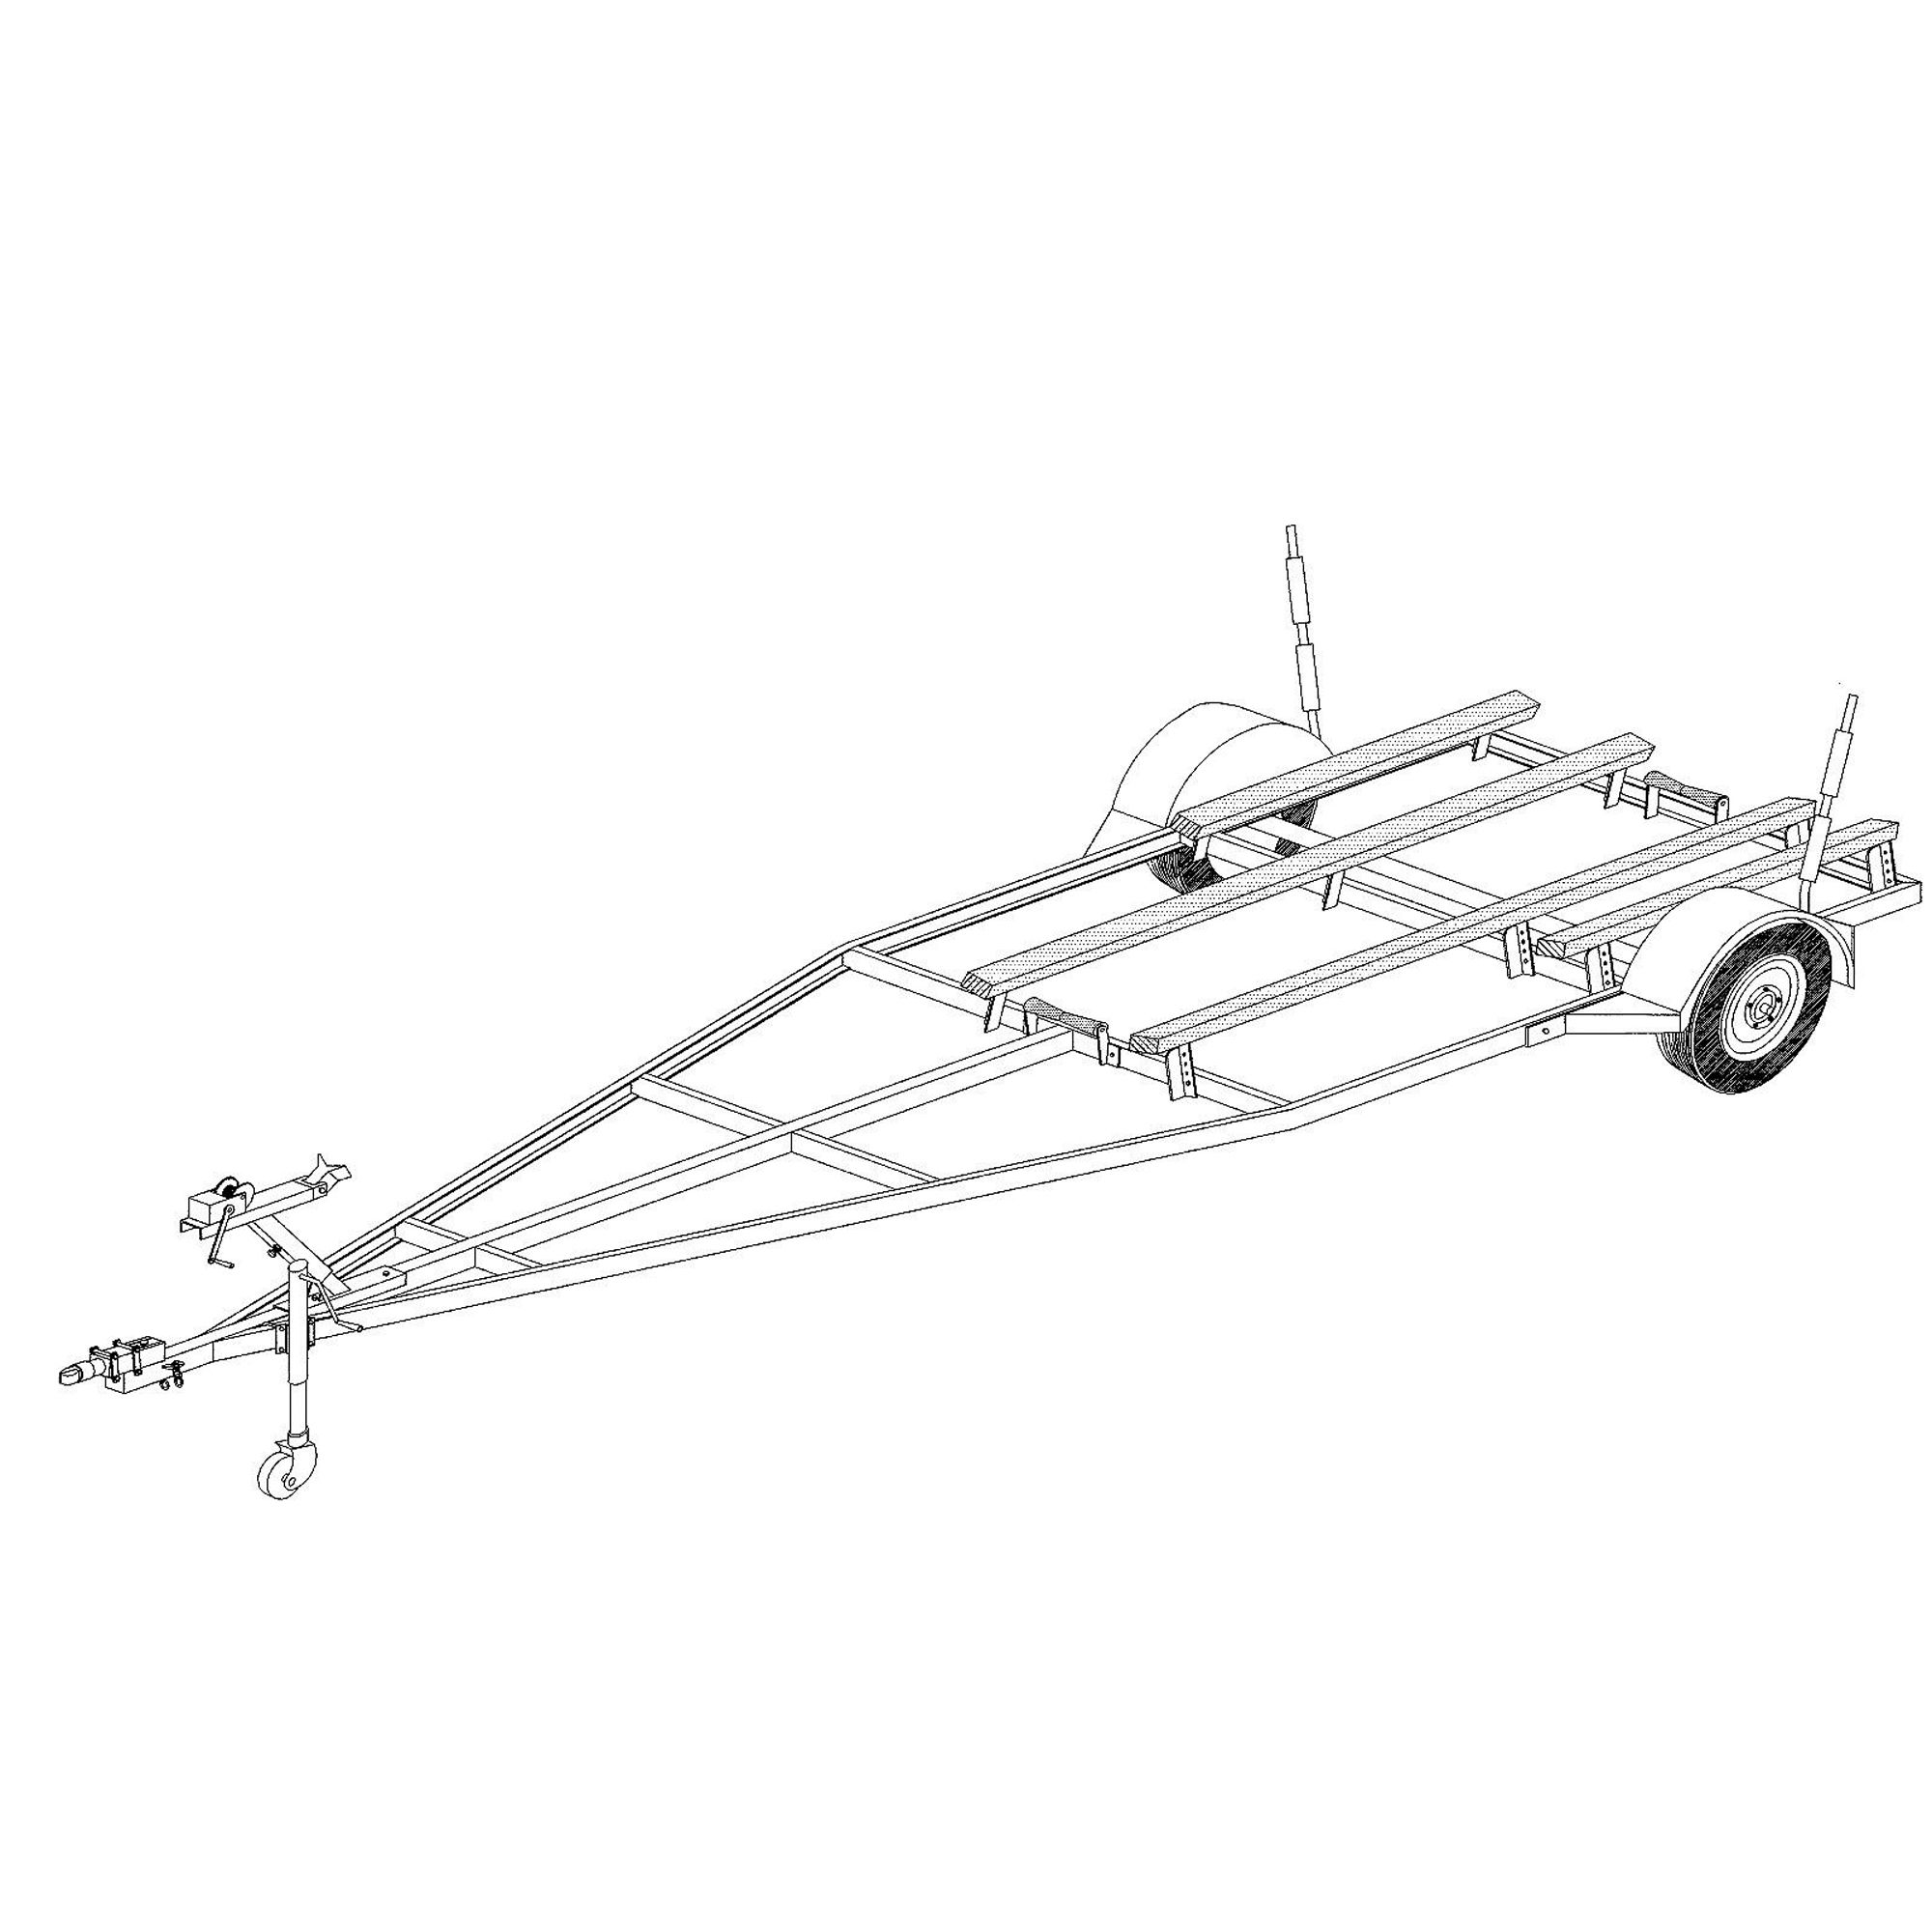 Boat Trailer Variable Width Amp Length Trailer Plans